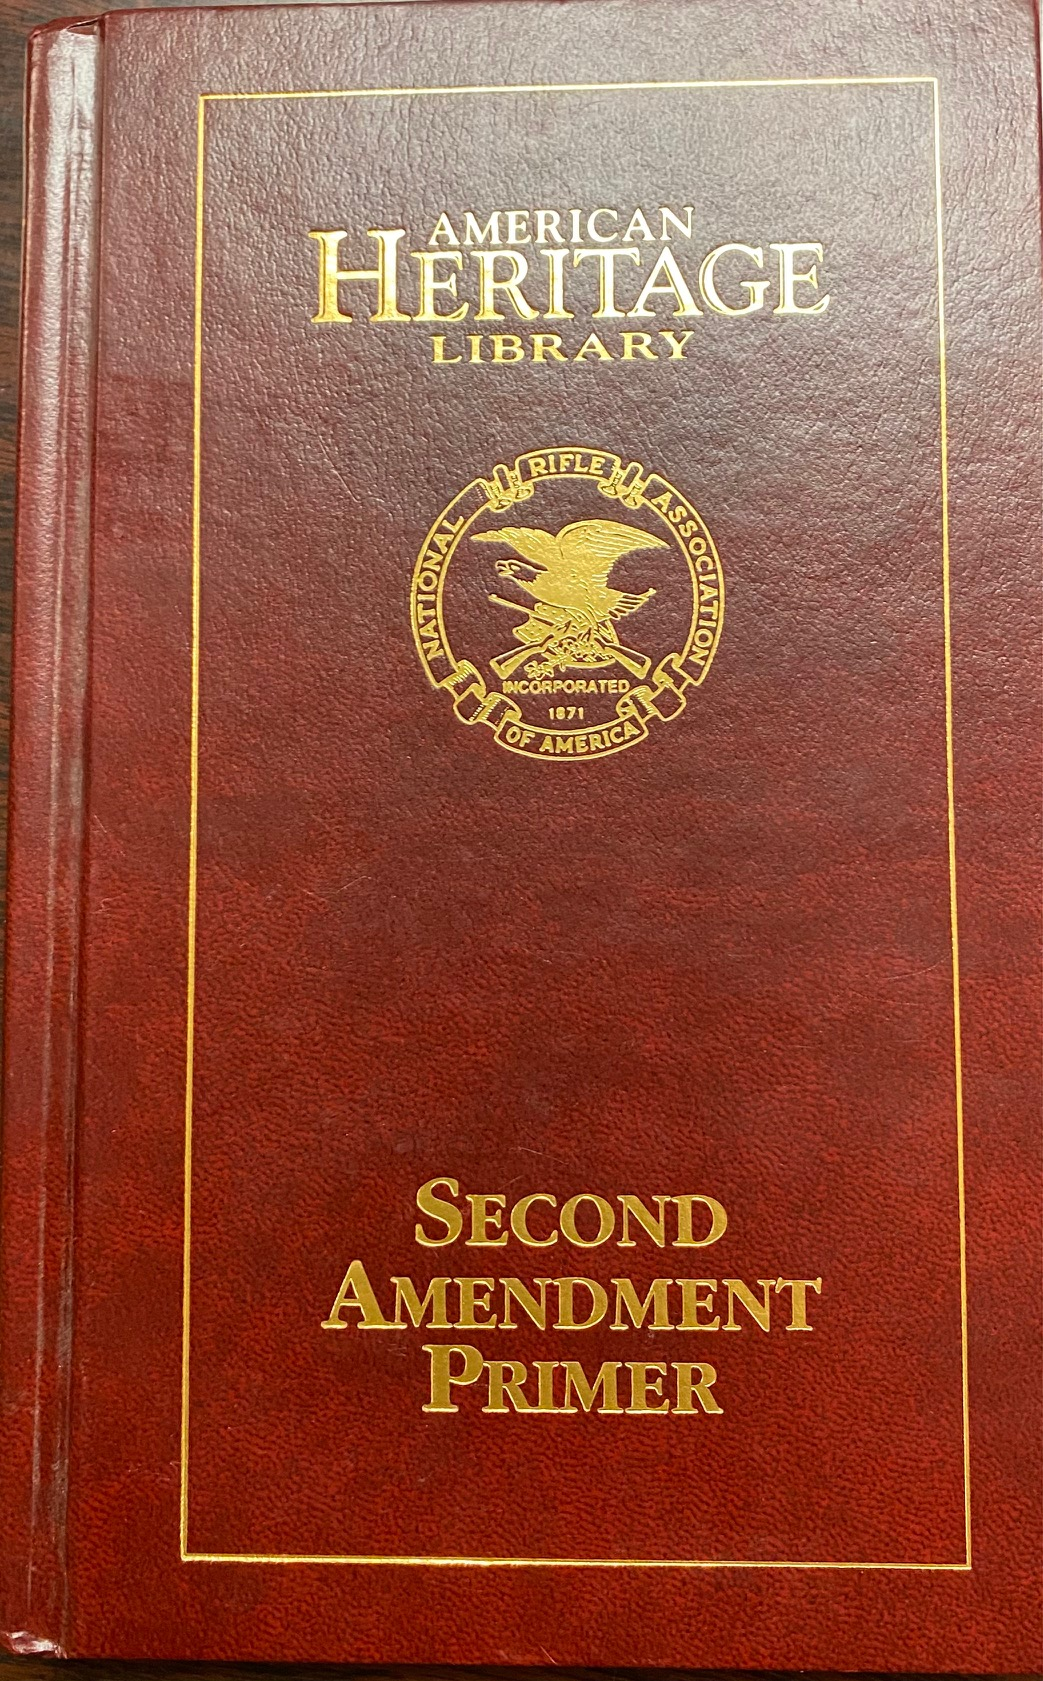 Image for The Second Amendment Primer: A Citizen's Guidebook to the History, Sources, and Authorities for the Constitutional Guarantee of the Right to Keep and Bear Arms.